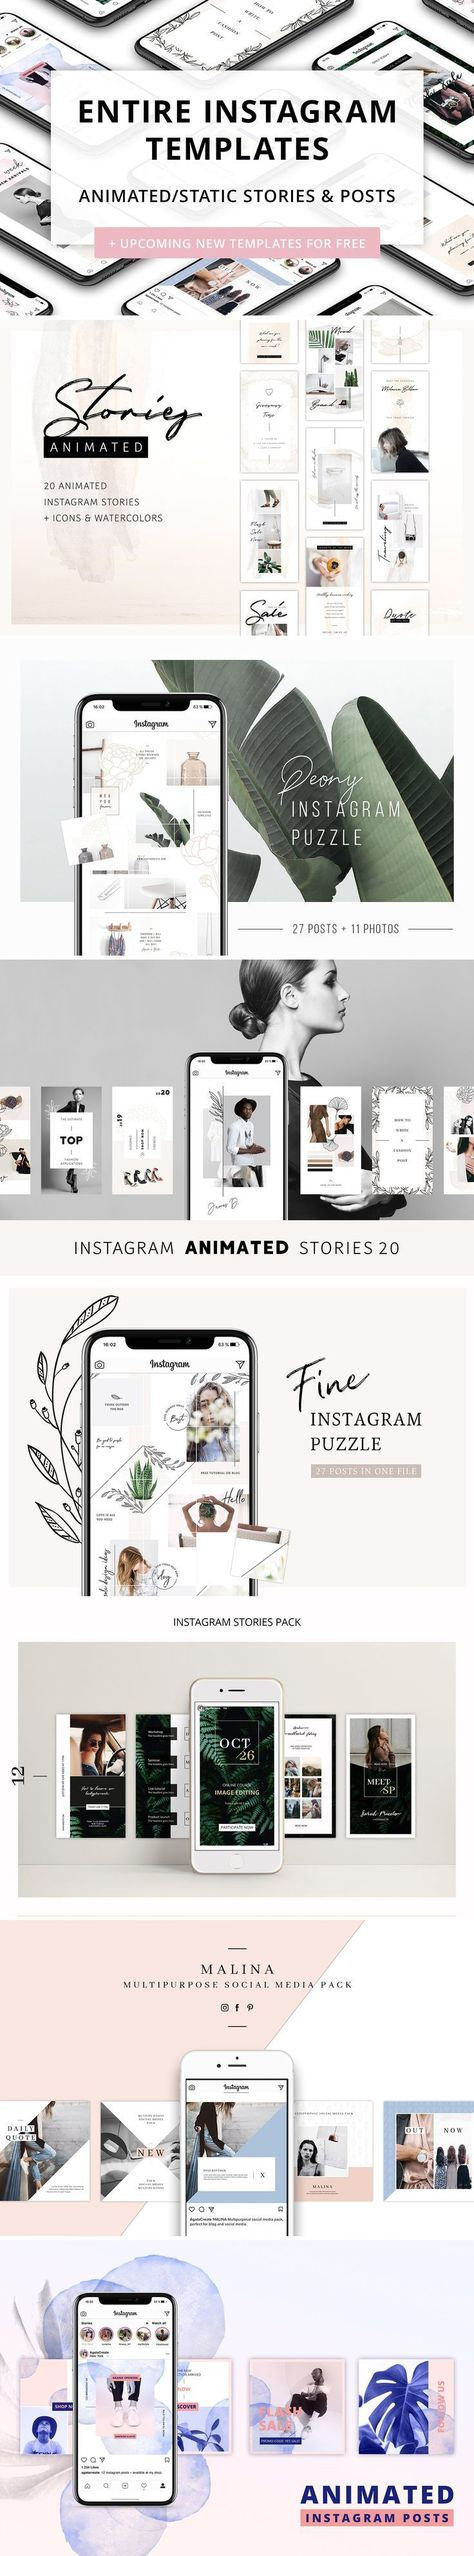 Entire Instagram Templates by AgataCreate on @creativemarket #inspiration #ideas #design #graphicdesign #graphic #instagram #socialmedia #socialmediamarketing